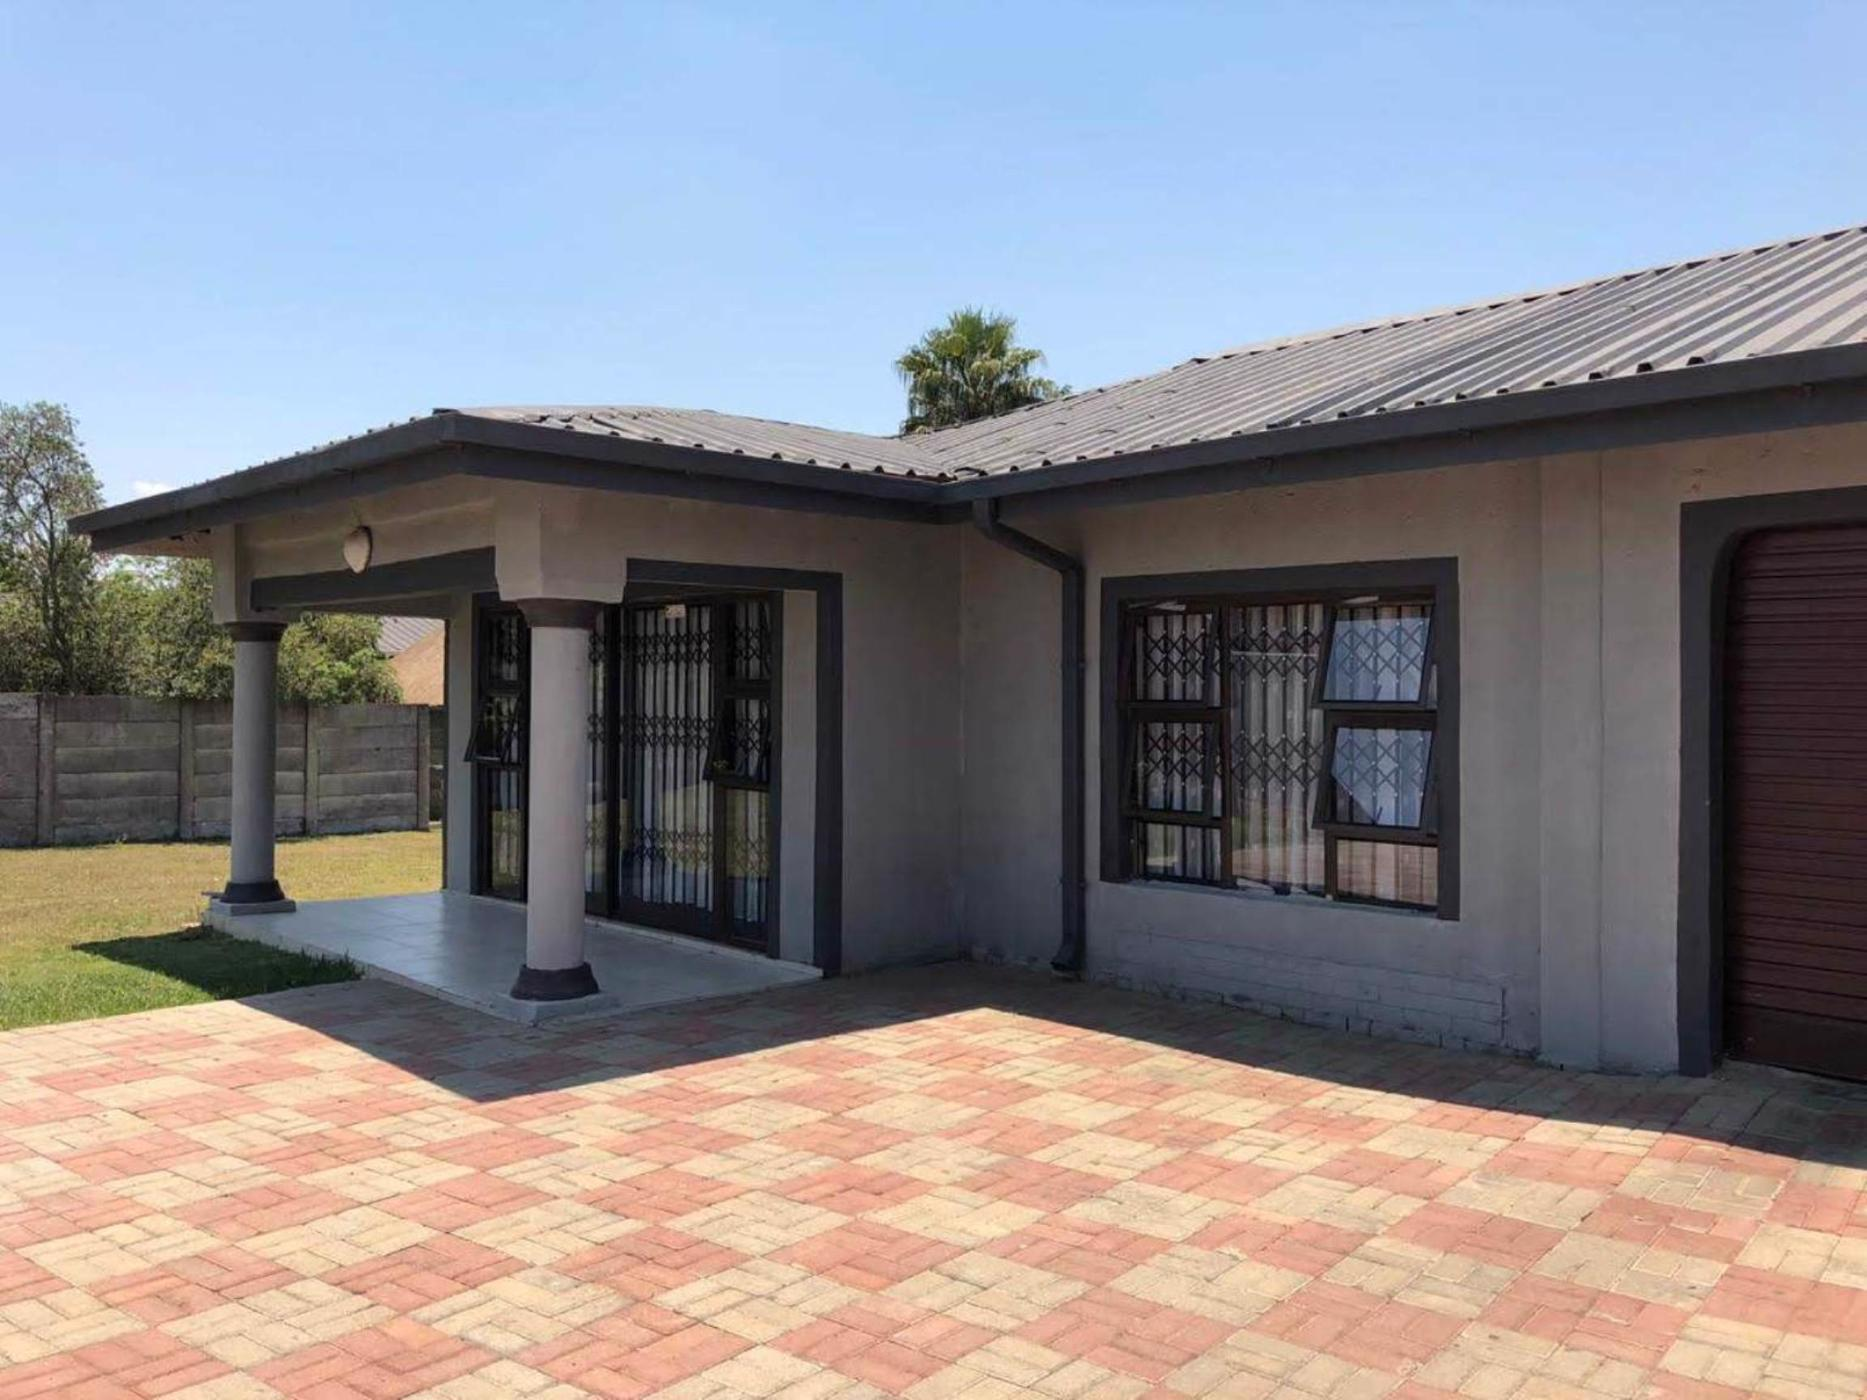 3 Bedroom House For Sale Arbor Park Newcastle